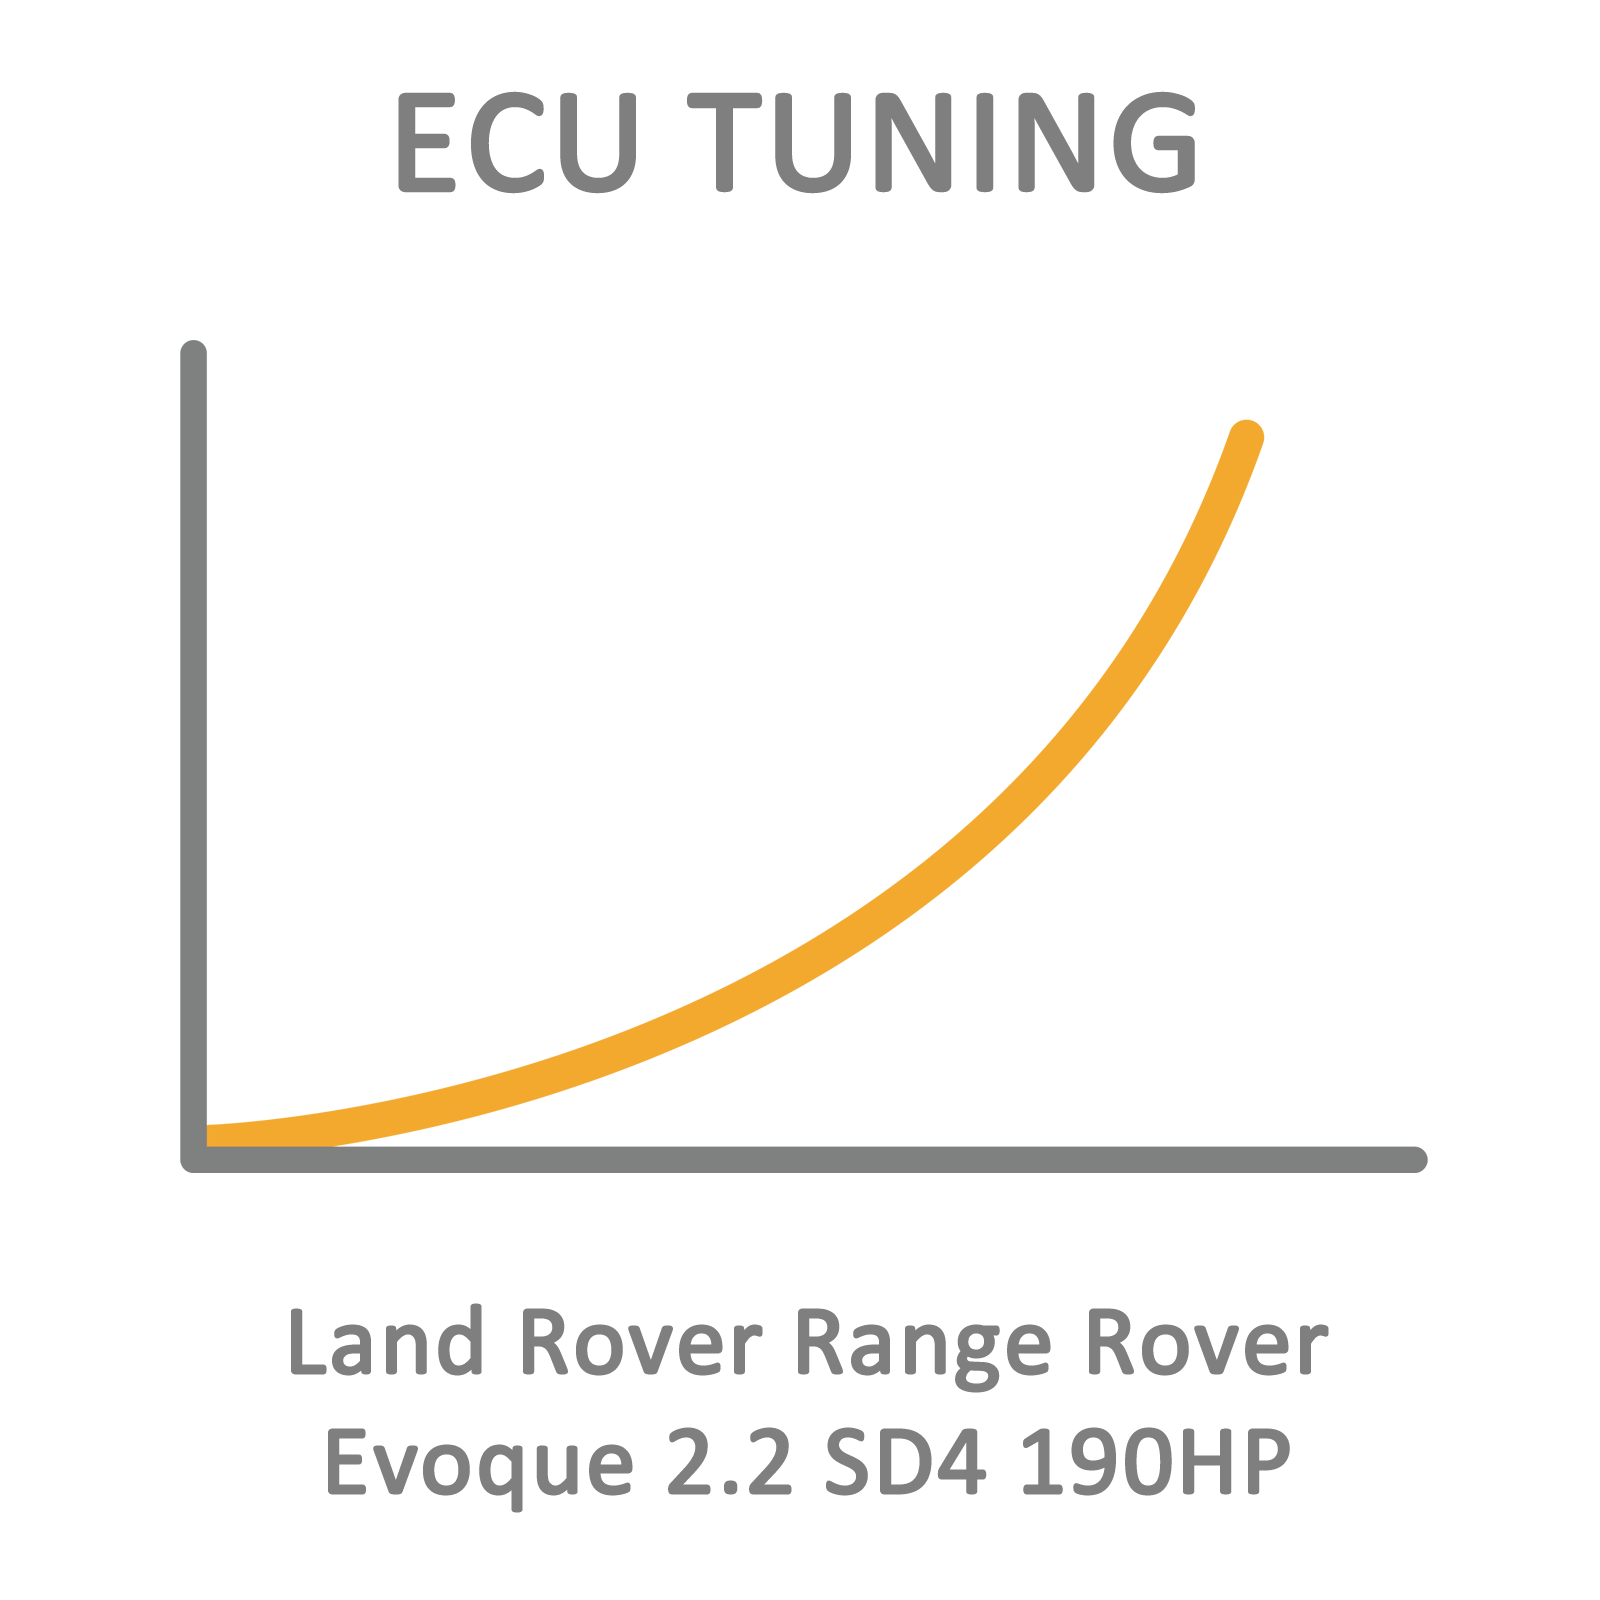 Land Rover Range Rover Evoque 2.2 SD4 190HP ECU Tuning